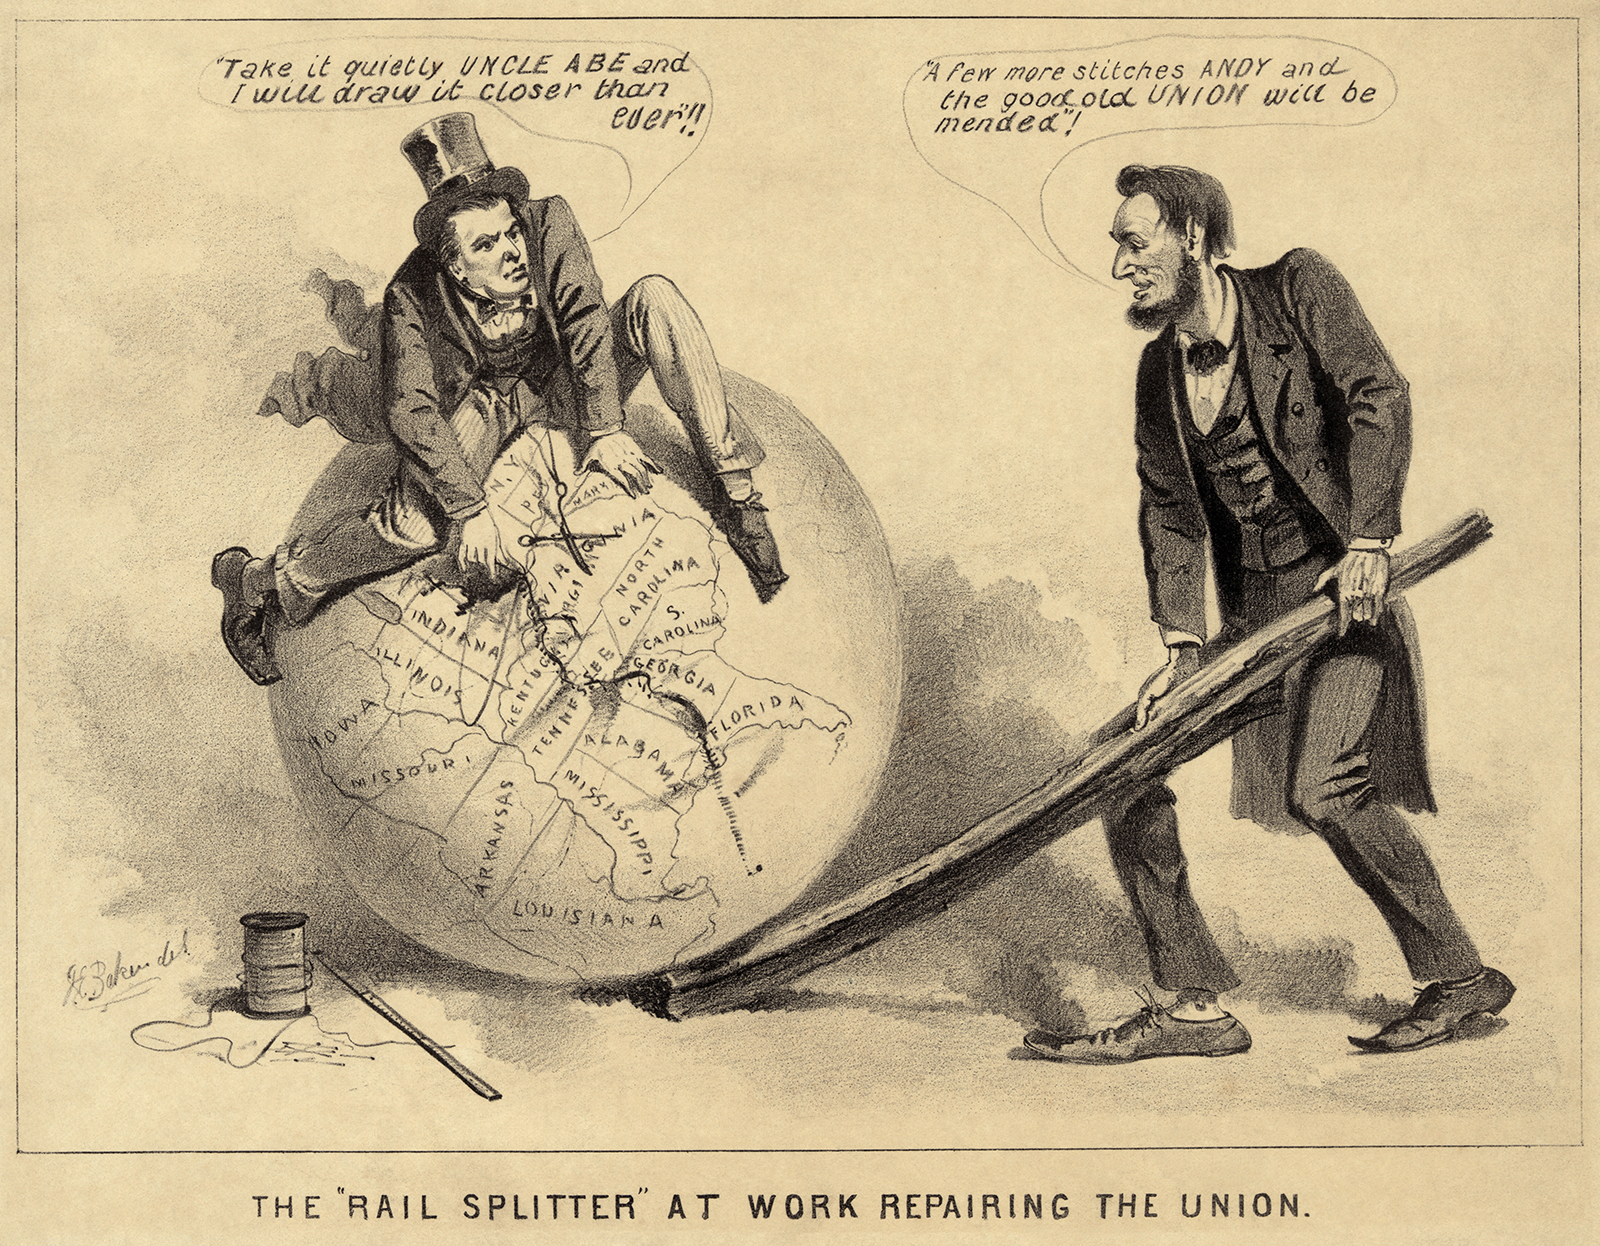 The Civil War, Emancipation, and Reconstruction on the World Stage